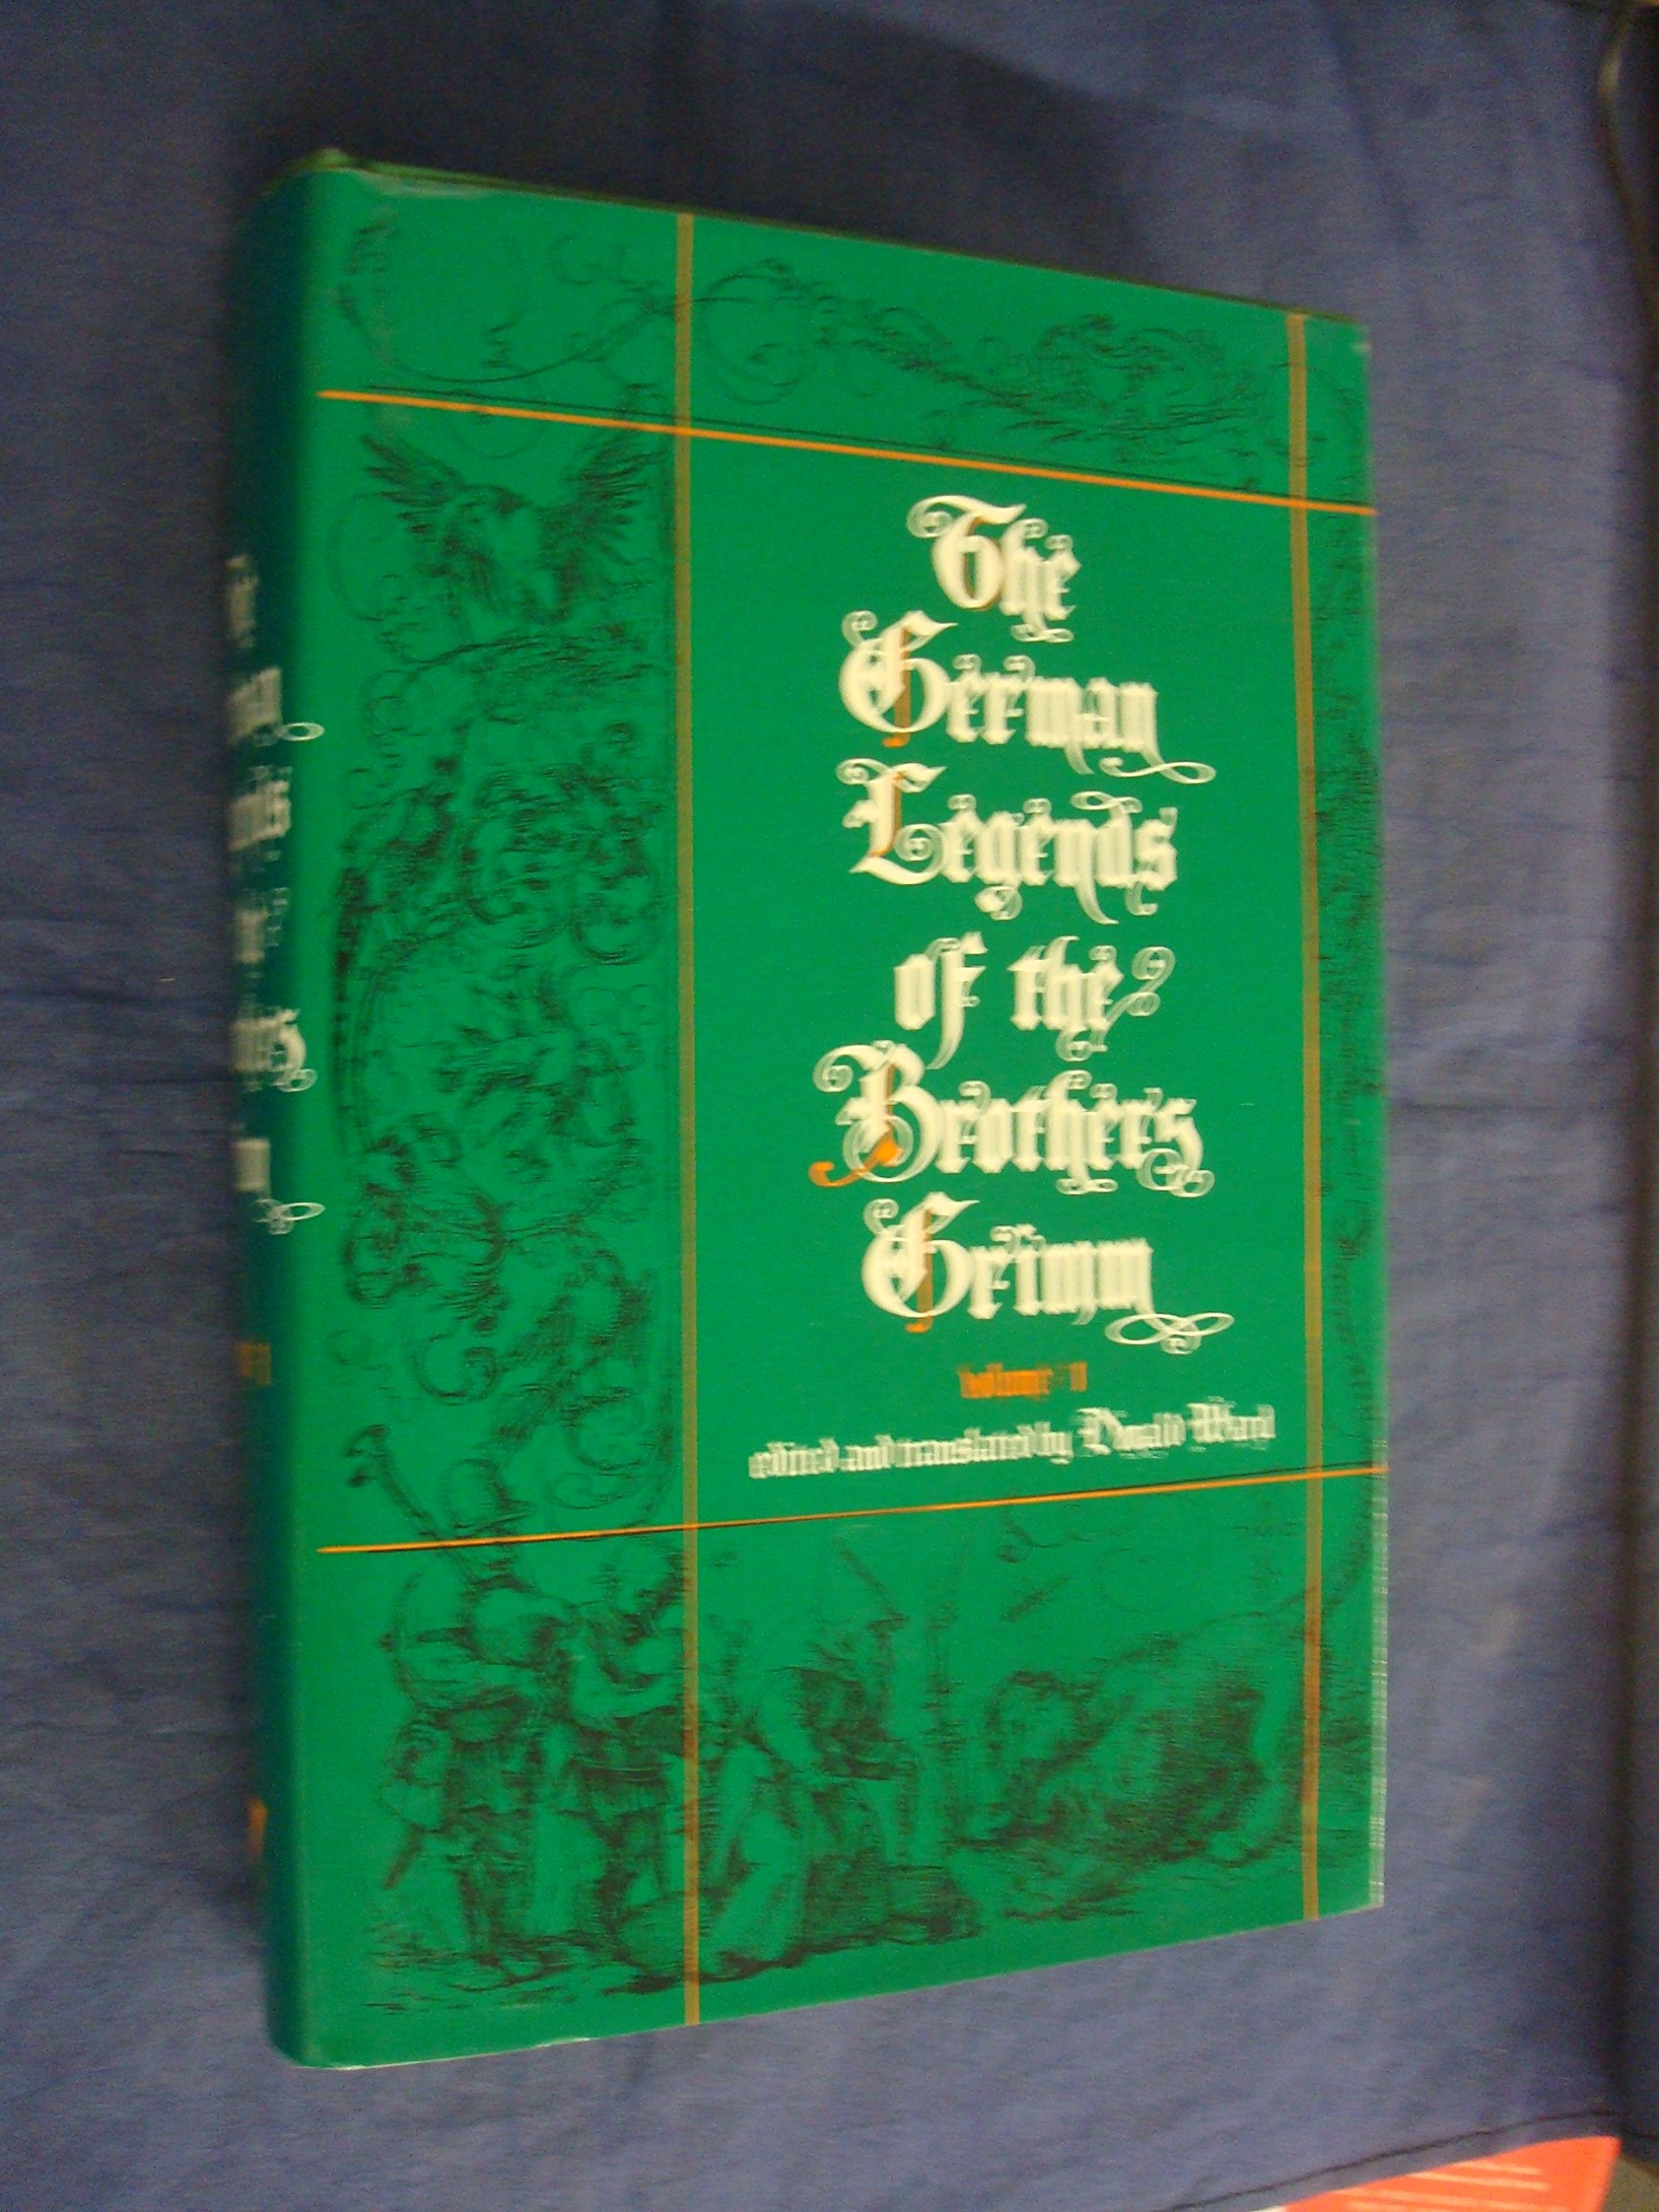 The German Legends of the Brothers Grimm, Volume 1 (Translations in Folklore  Studies): Donald Ward: 9780915980727: Amazon.com: Books